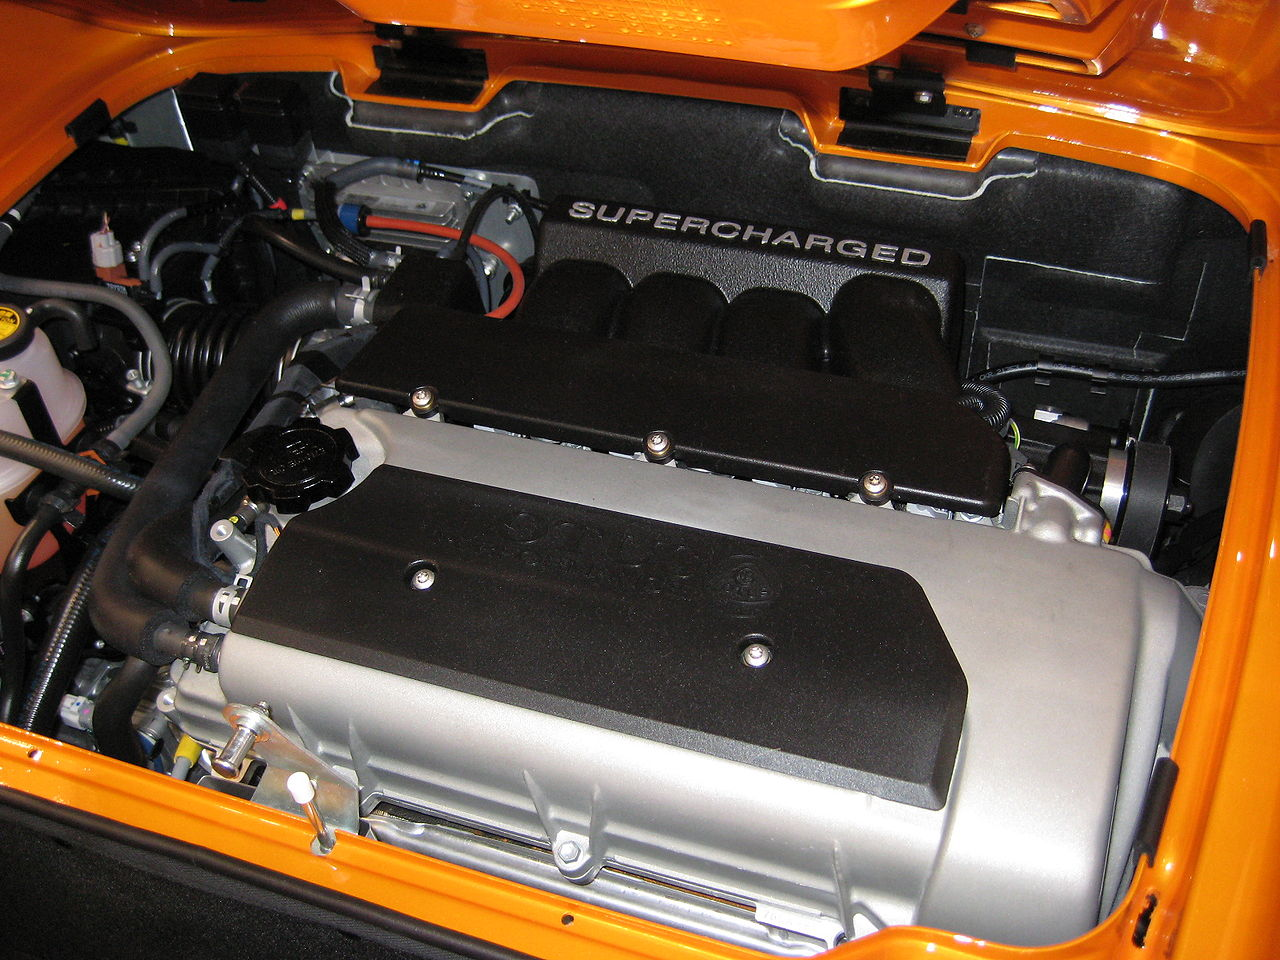 Filelotus Supercharged Engine Wikimedia Commons 2002 Toyota Fuel Filter Location